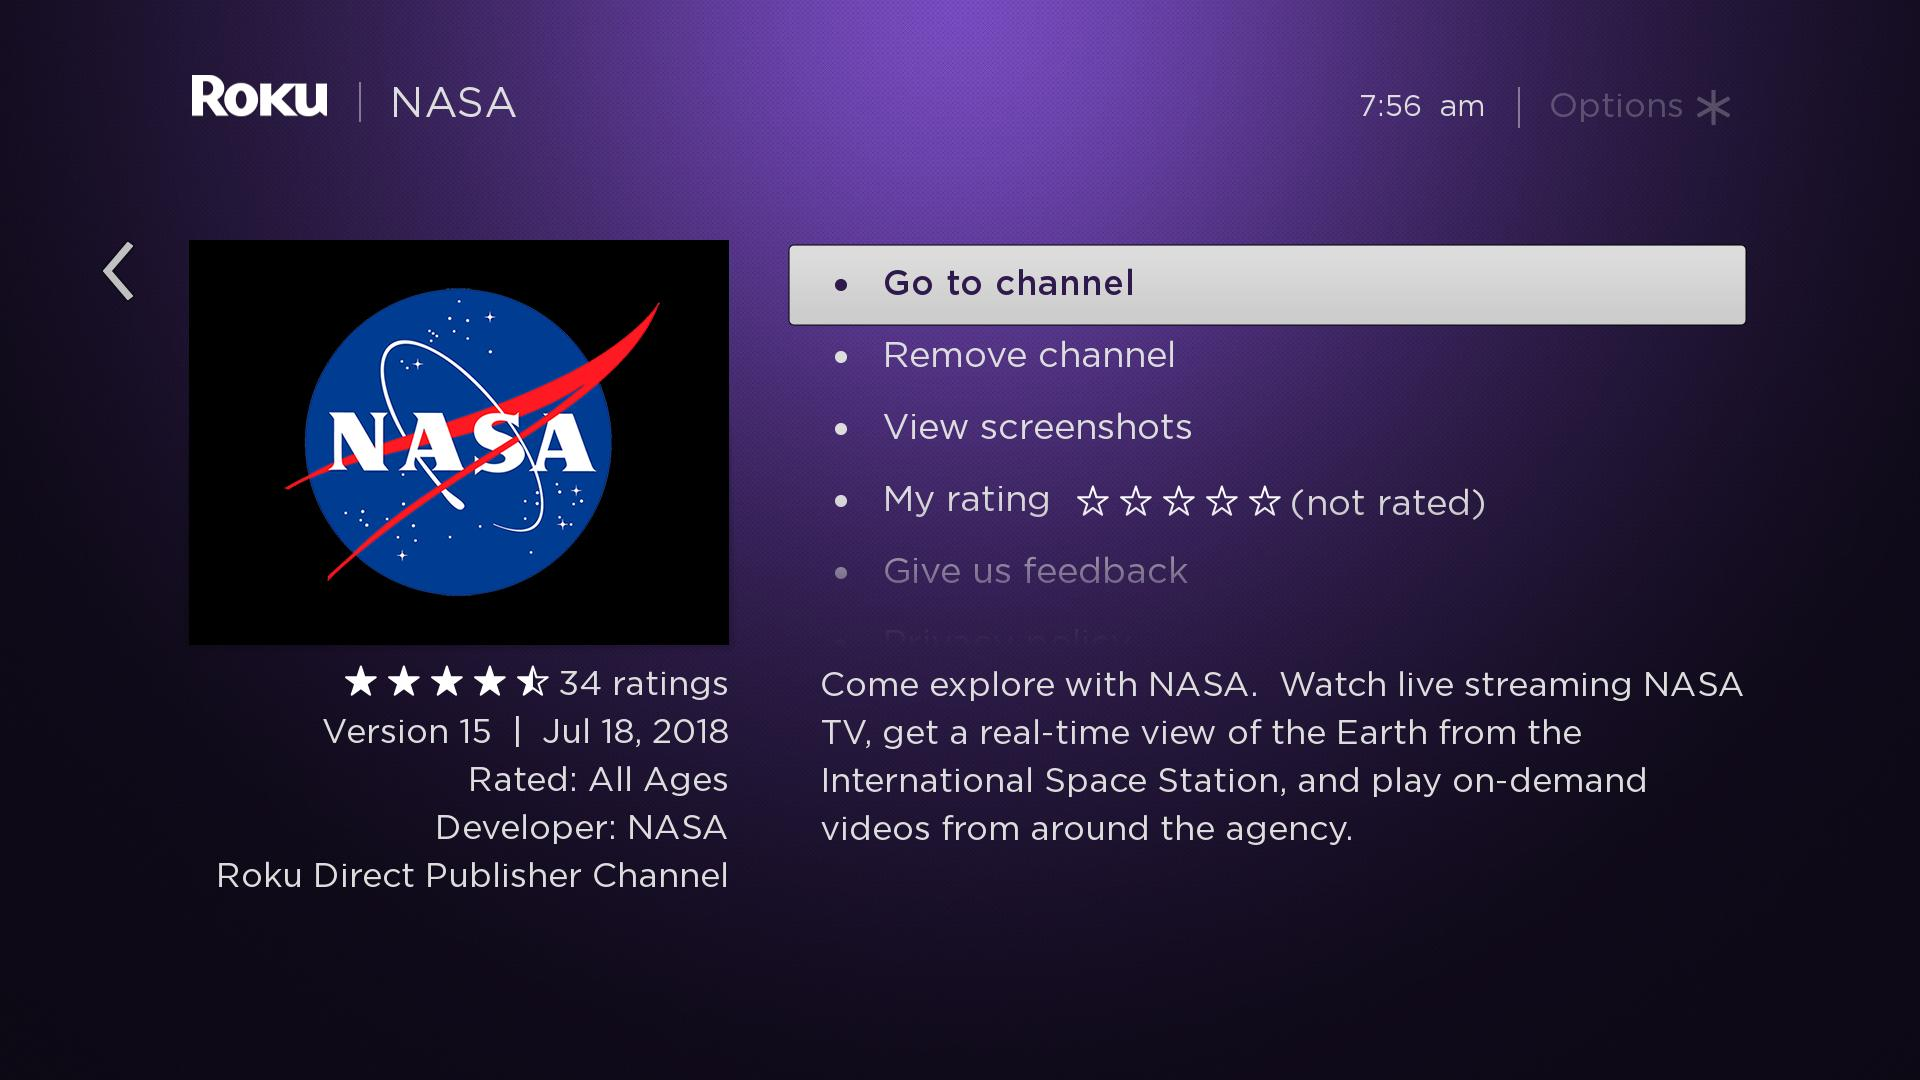 NASA Launches Channel for Roku | NASA